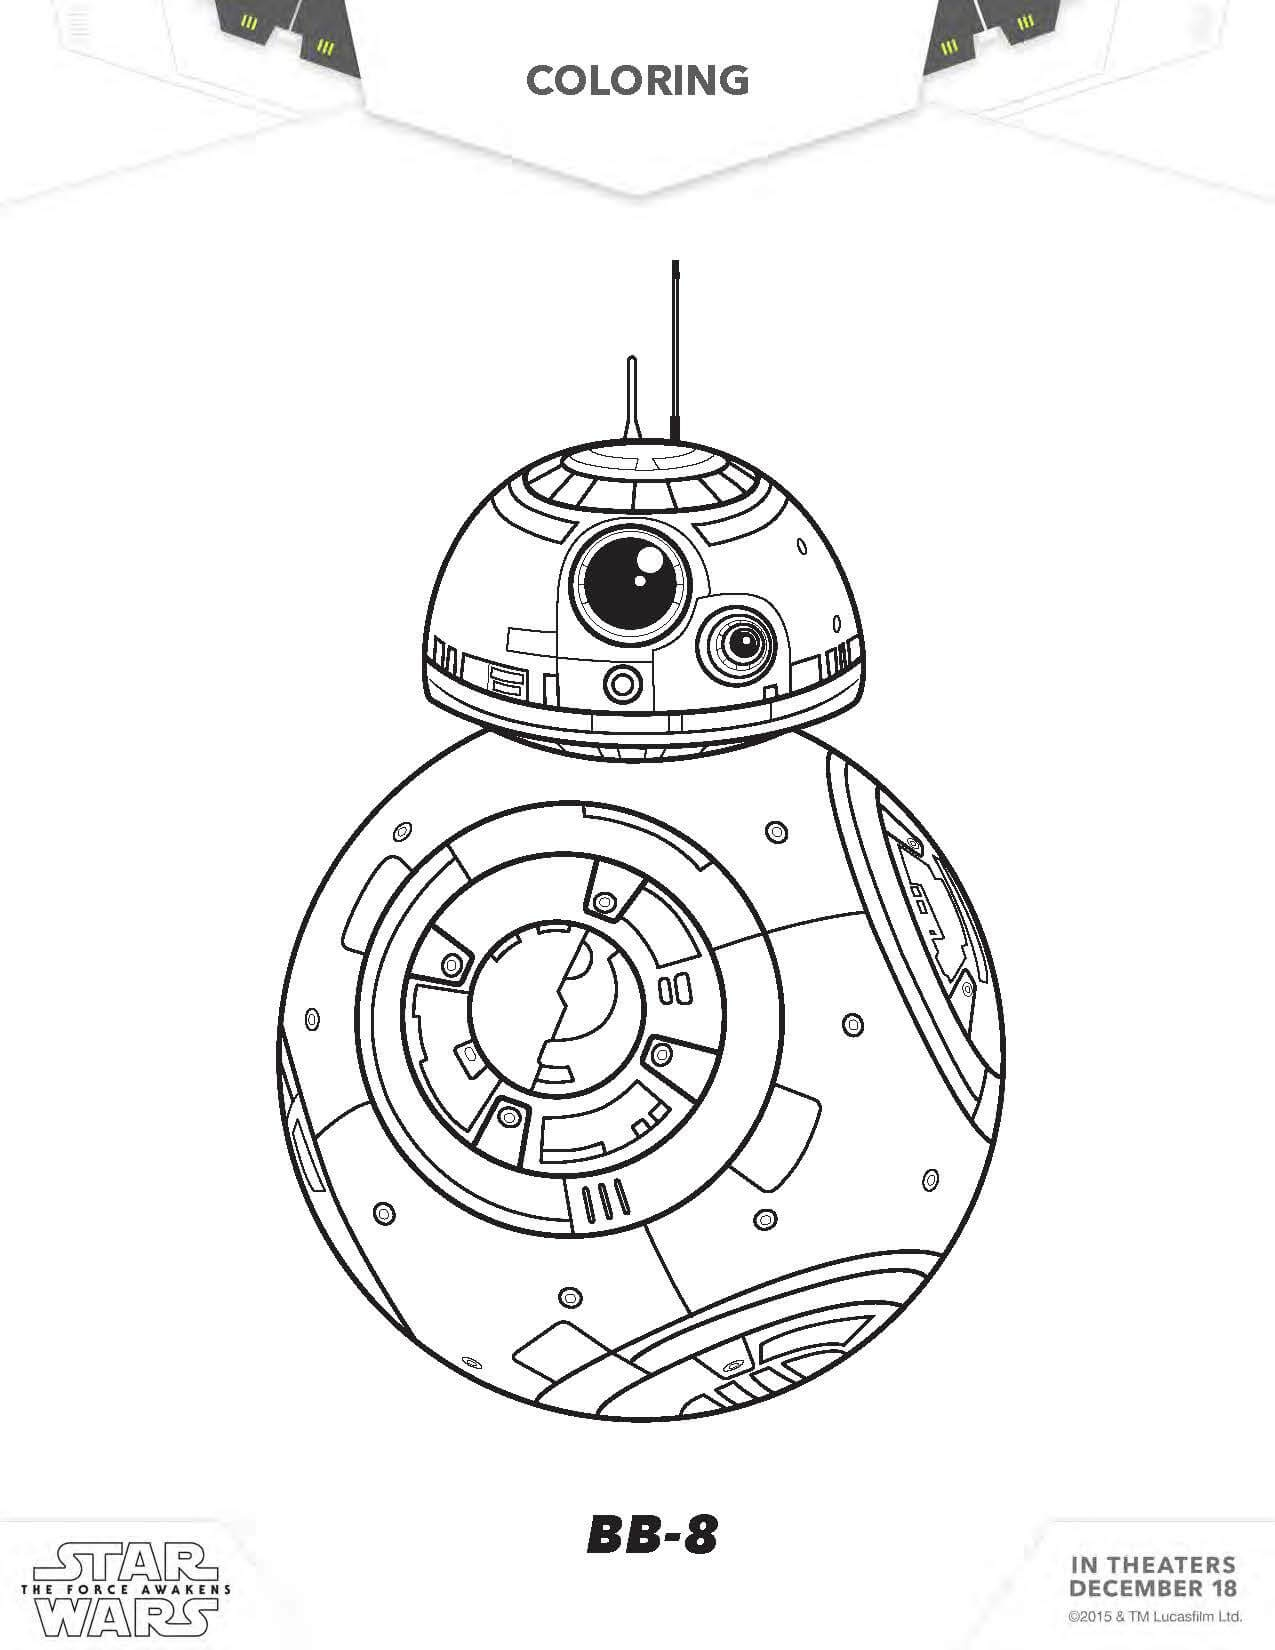 Lovely Sensational Bb8 Coloring Page Star Wars Pages the force Collection Of Coloring Pages Of Star Wars Free Coloring Pages Star Wars Printable